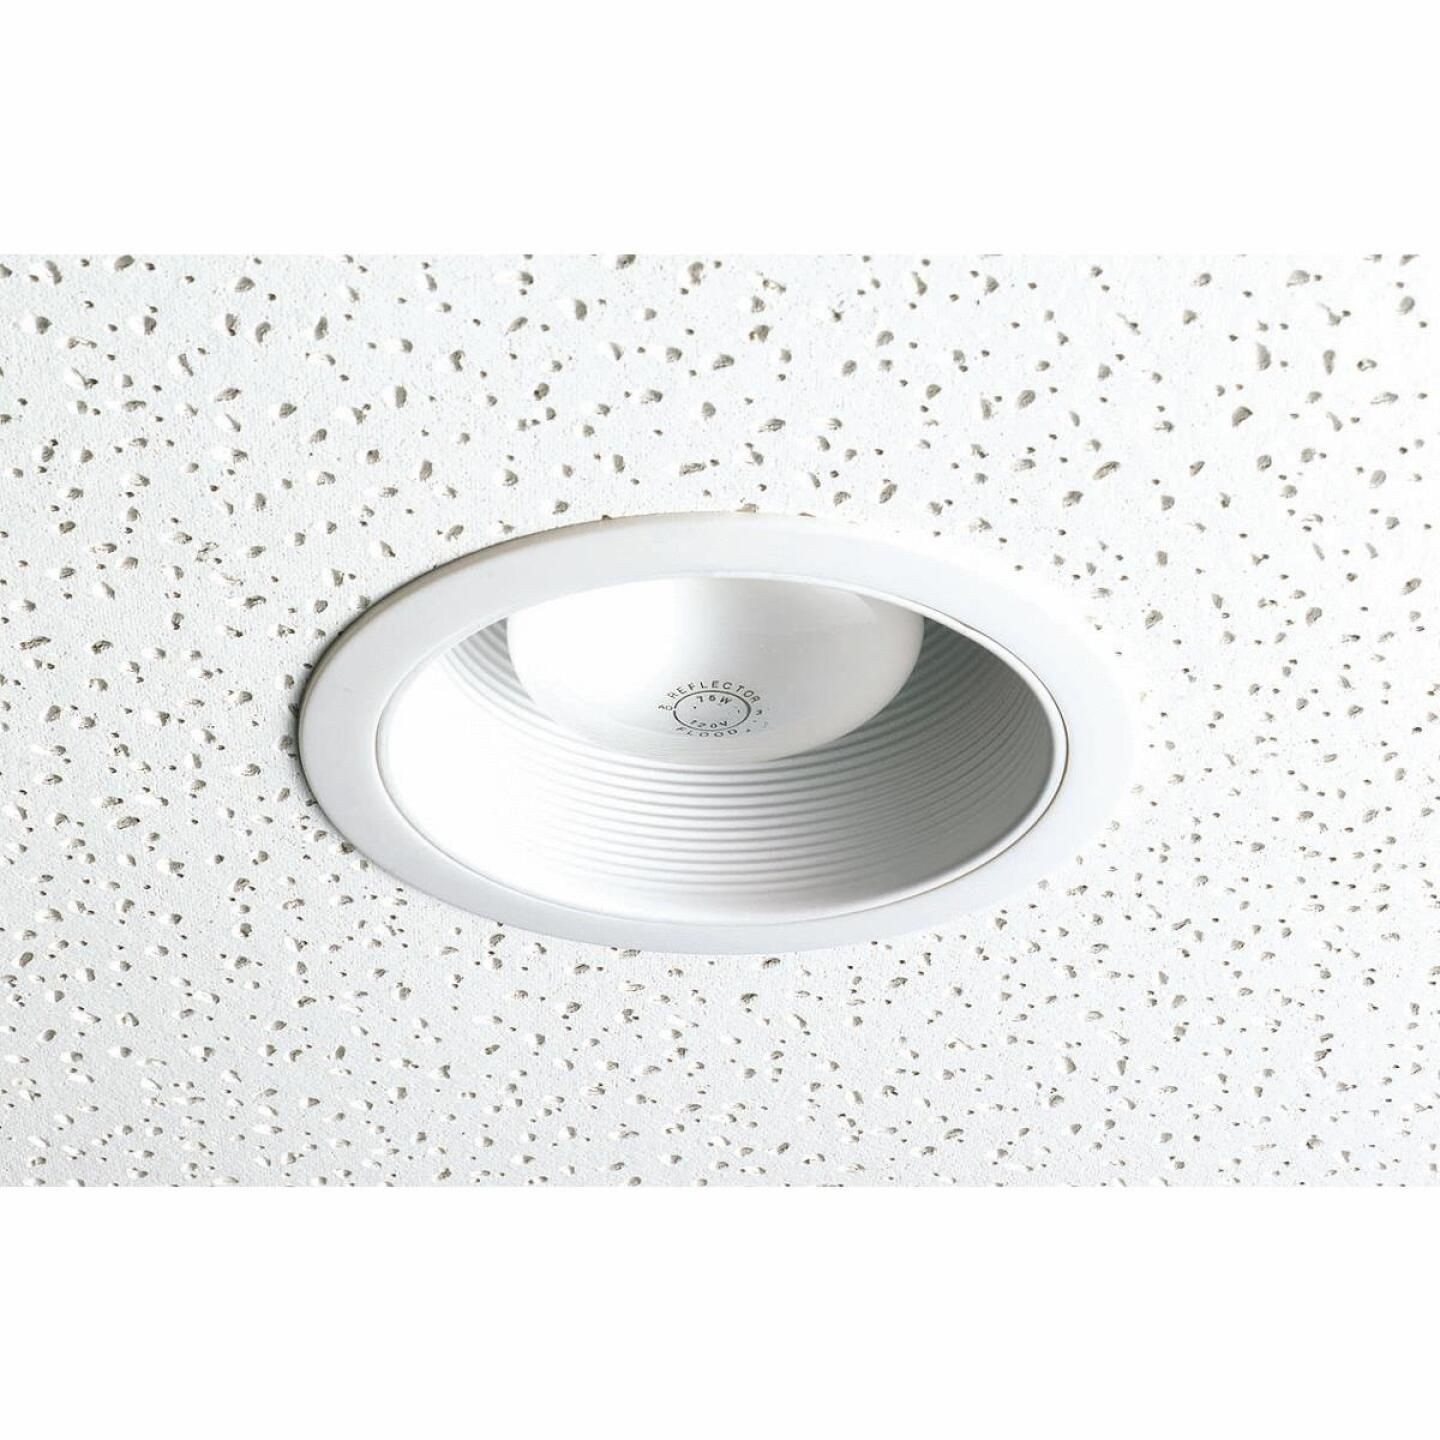 Thomas 6 In. White Trim w/White Step Baffle Recessed Fixture Trim Image 1